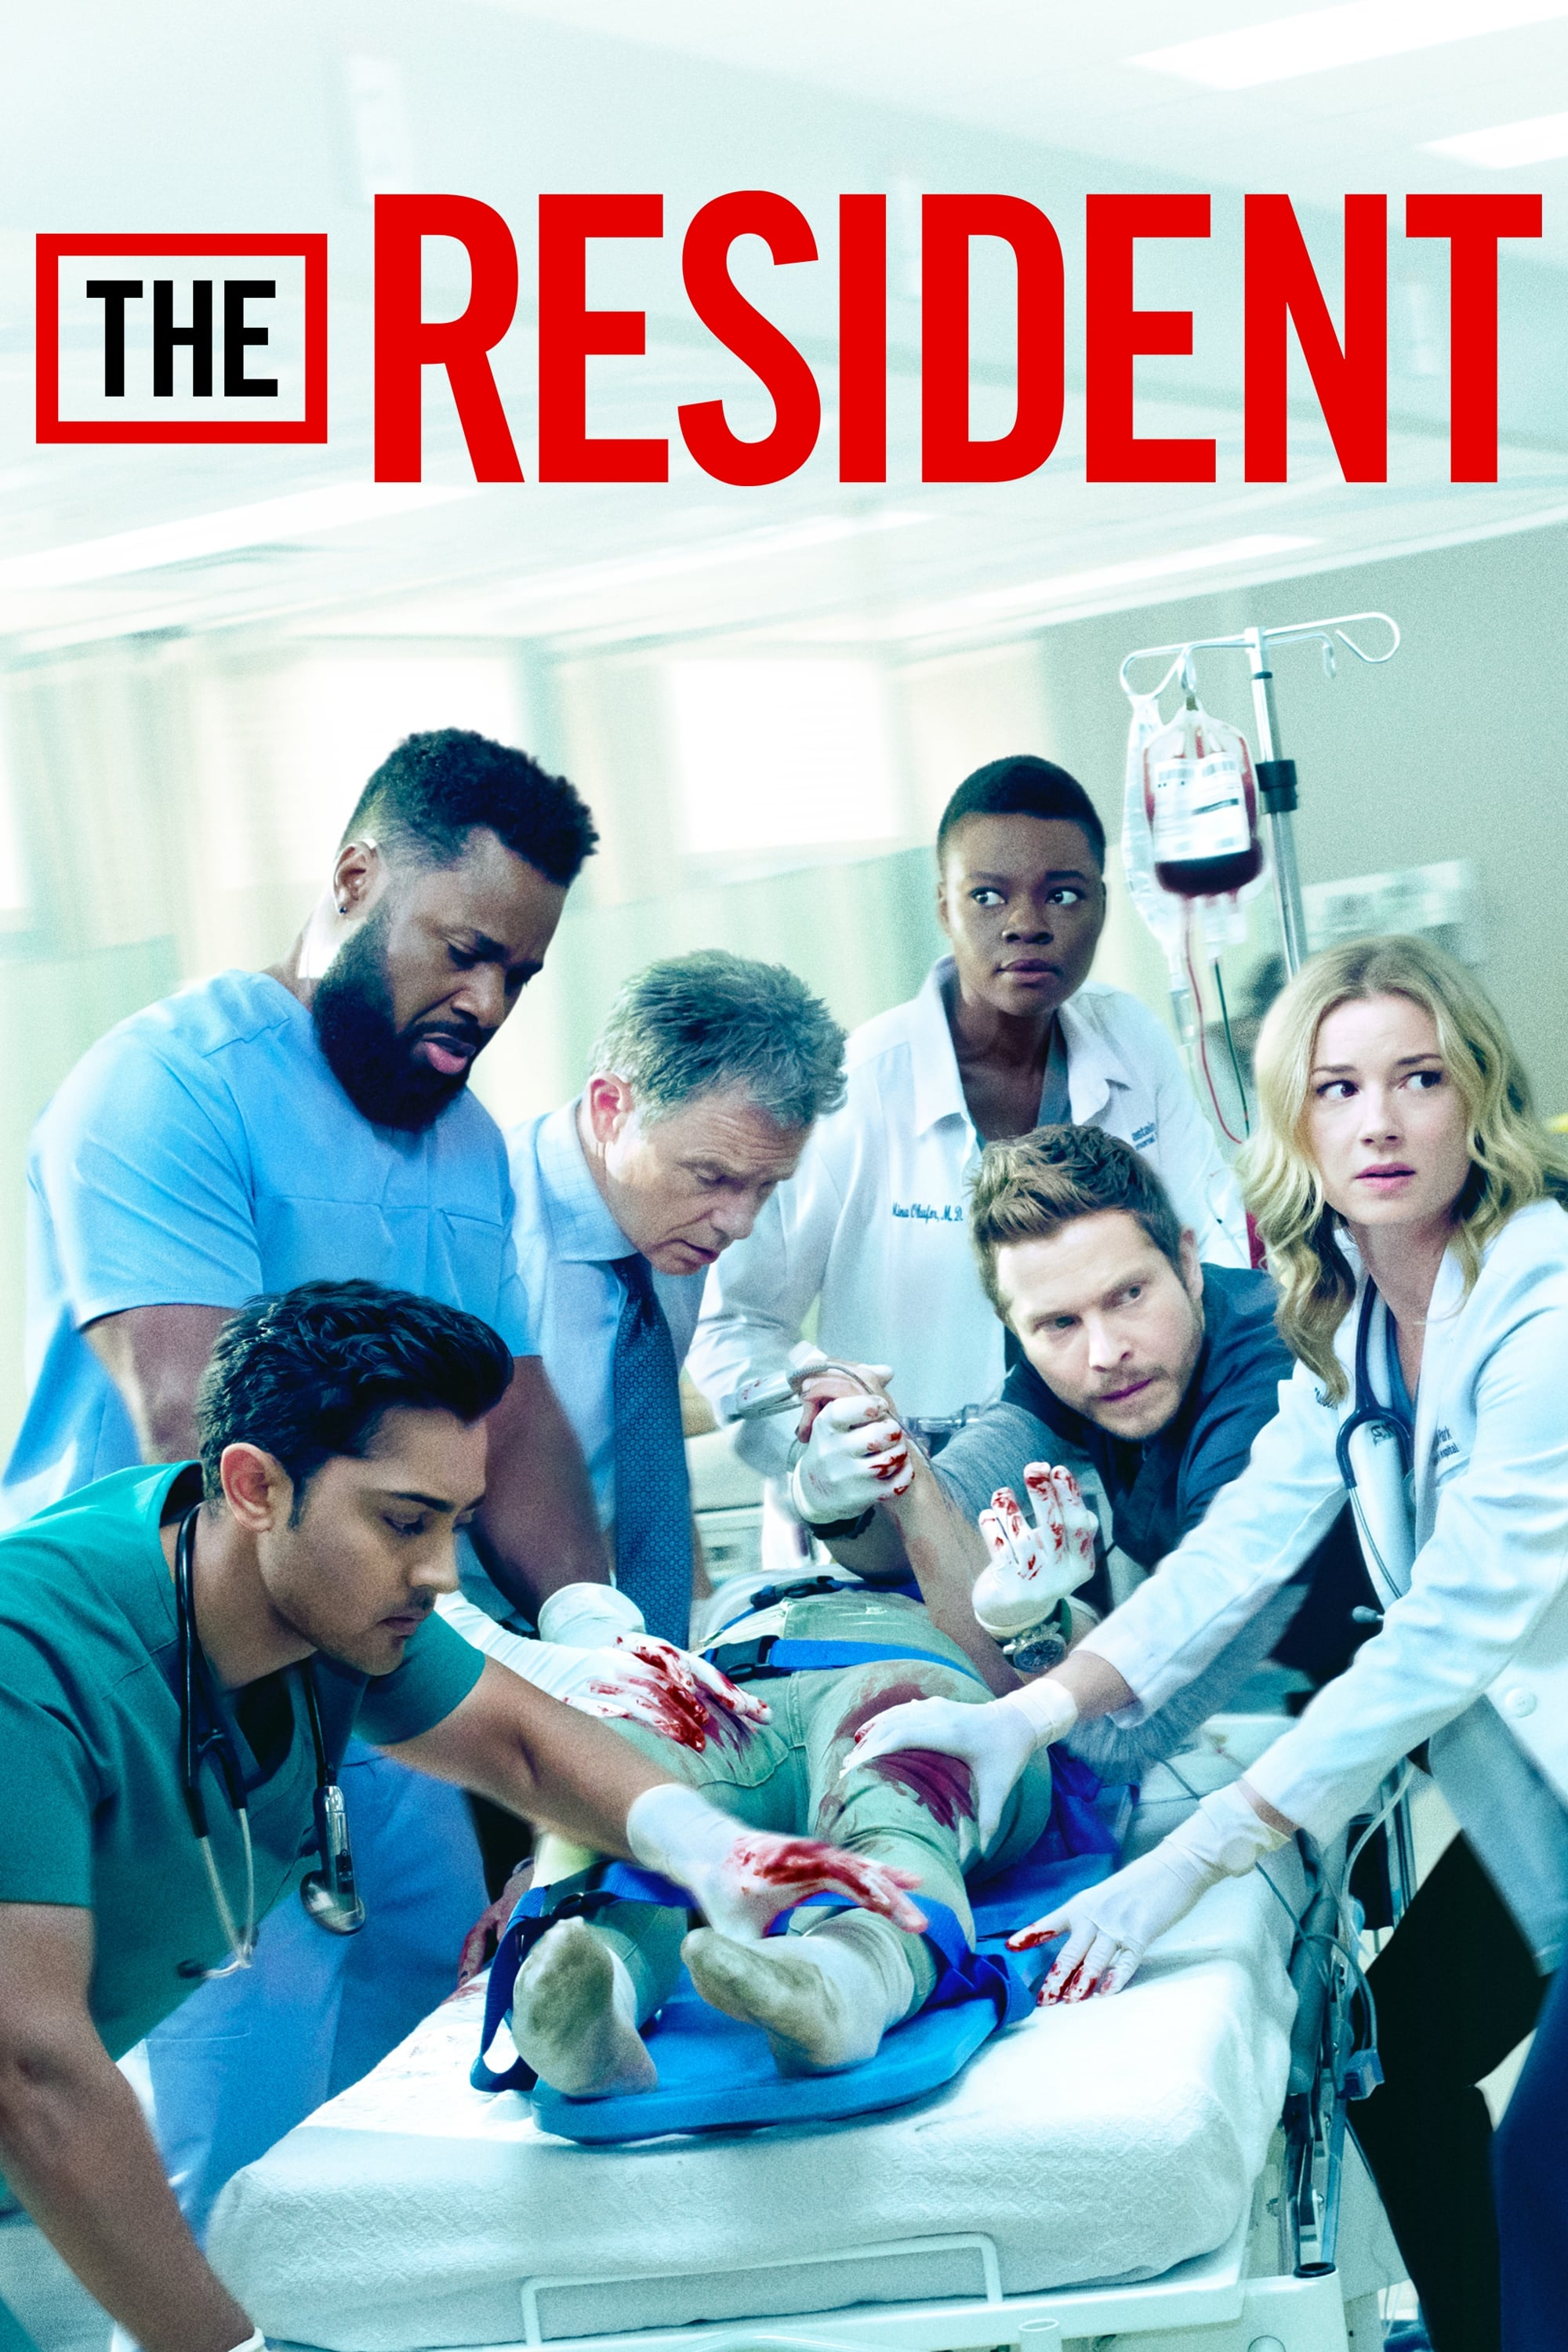 Legenda The Resident S03E01